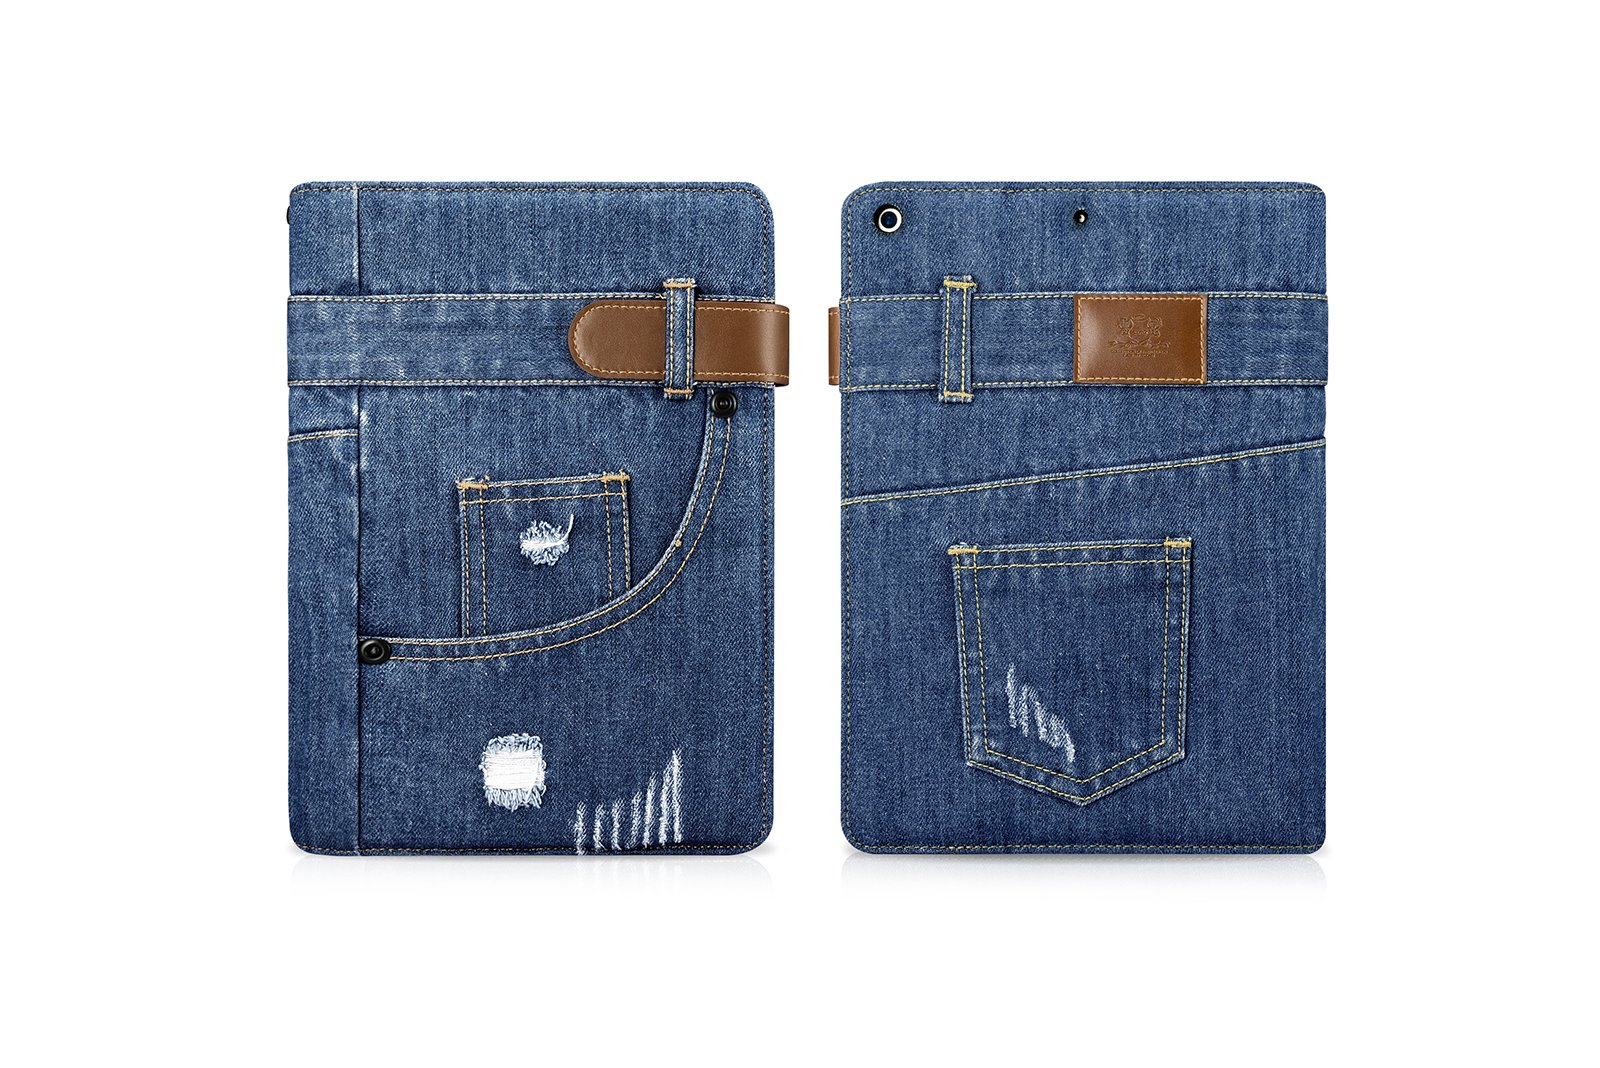 New iPad 9.7 in (2017) Case,New iPad 2017 Release 9.7 inch Case,Canvas Denim [Jeans Style] Slim Folio Smart Cover, Lightweight Smart Case with Stent Stand for iPad 9.7-inch by drool